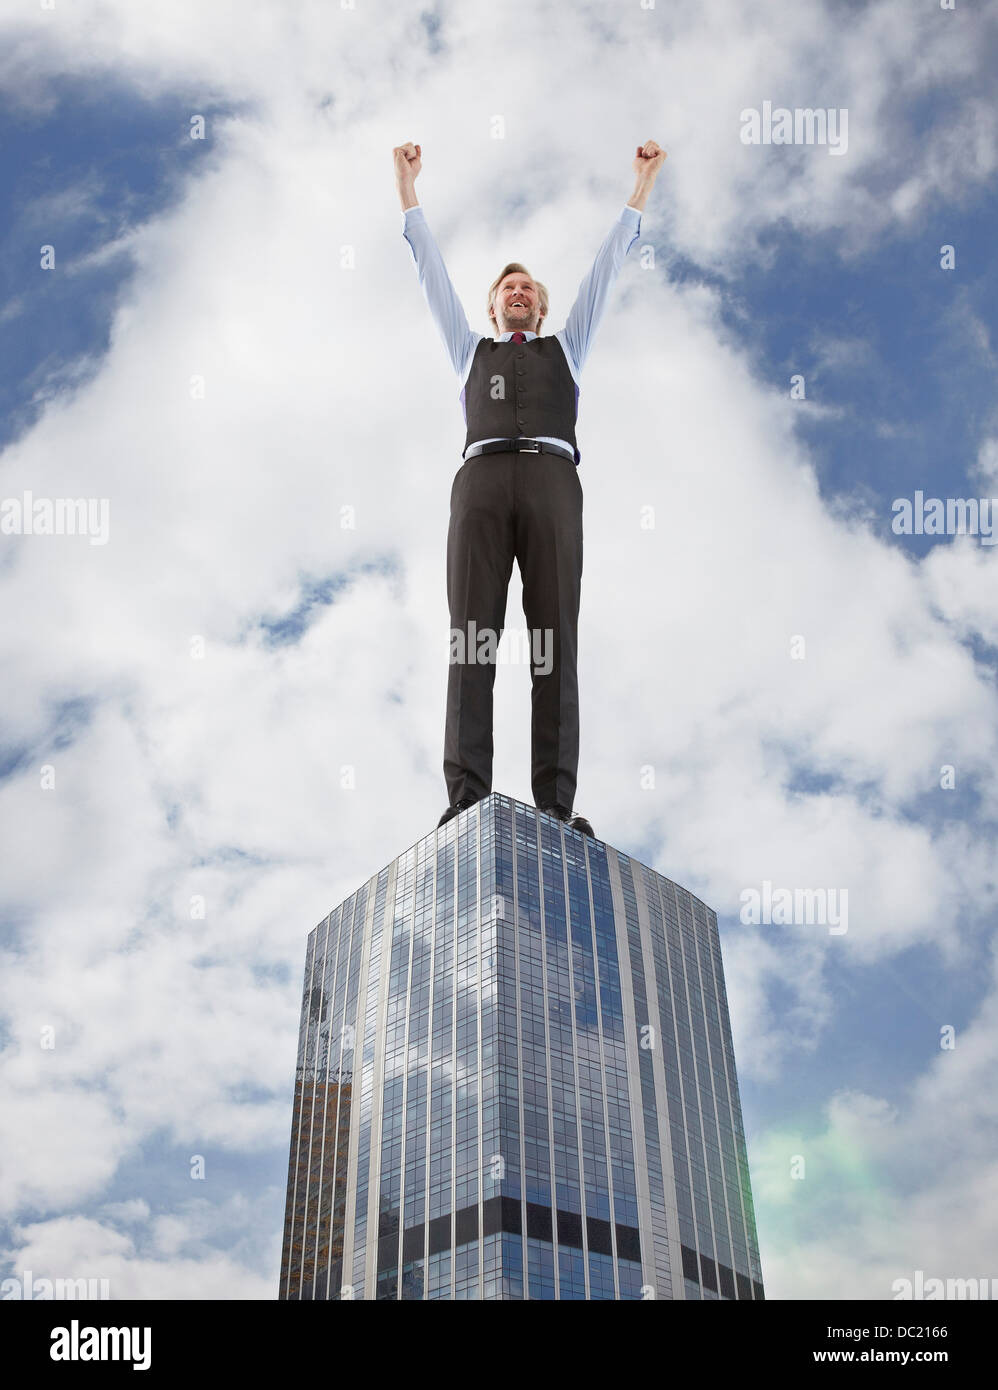 Oversized businessman cheering on skyscraper, low angle view - Stock Image